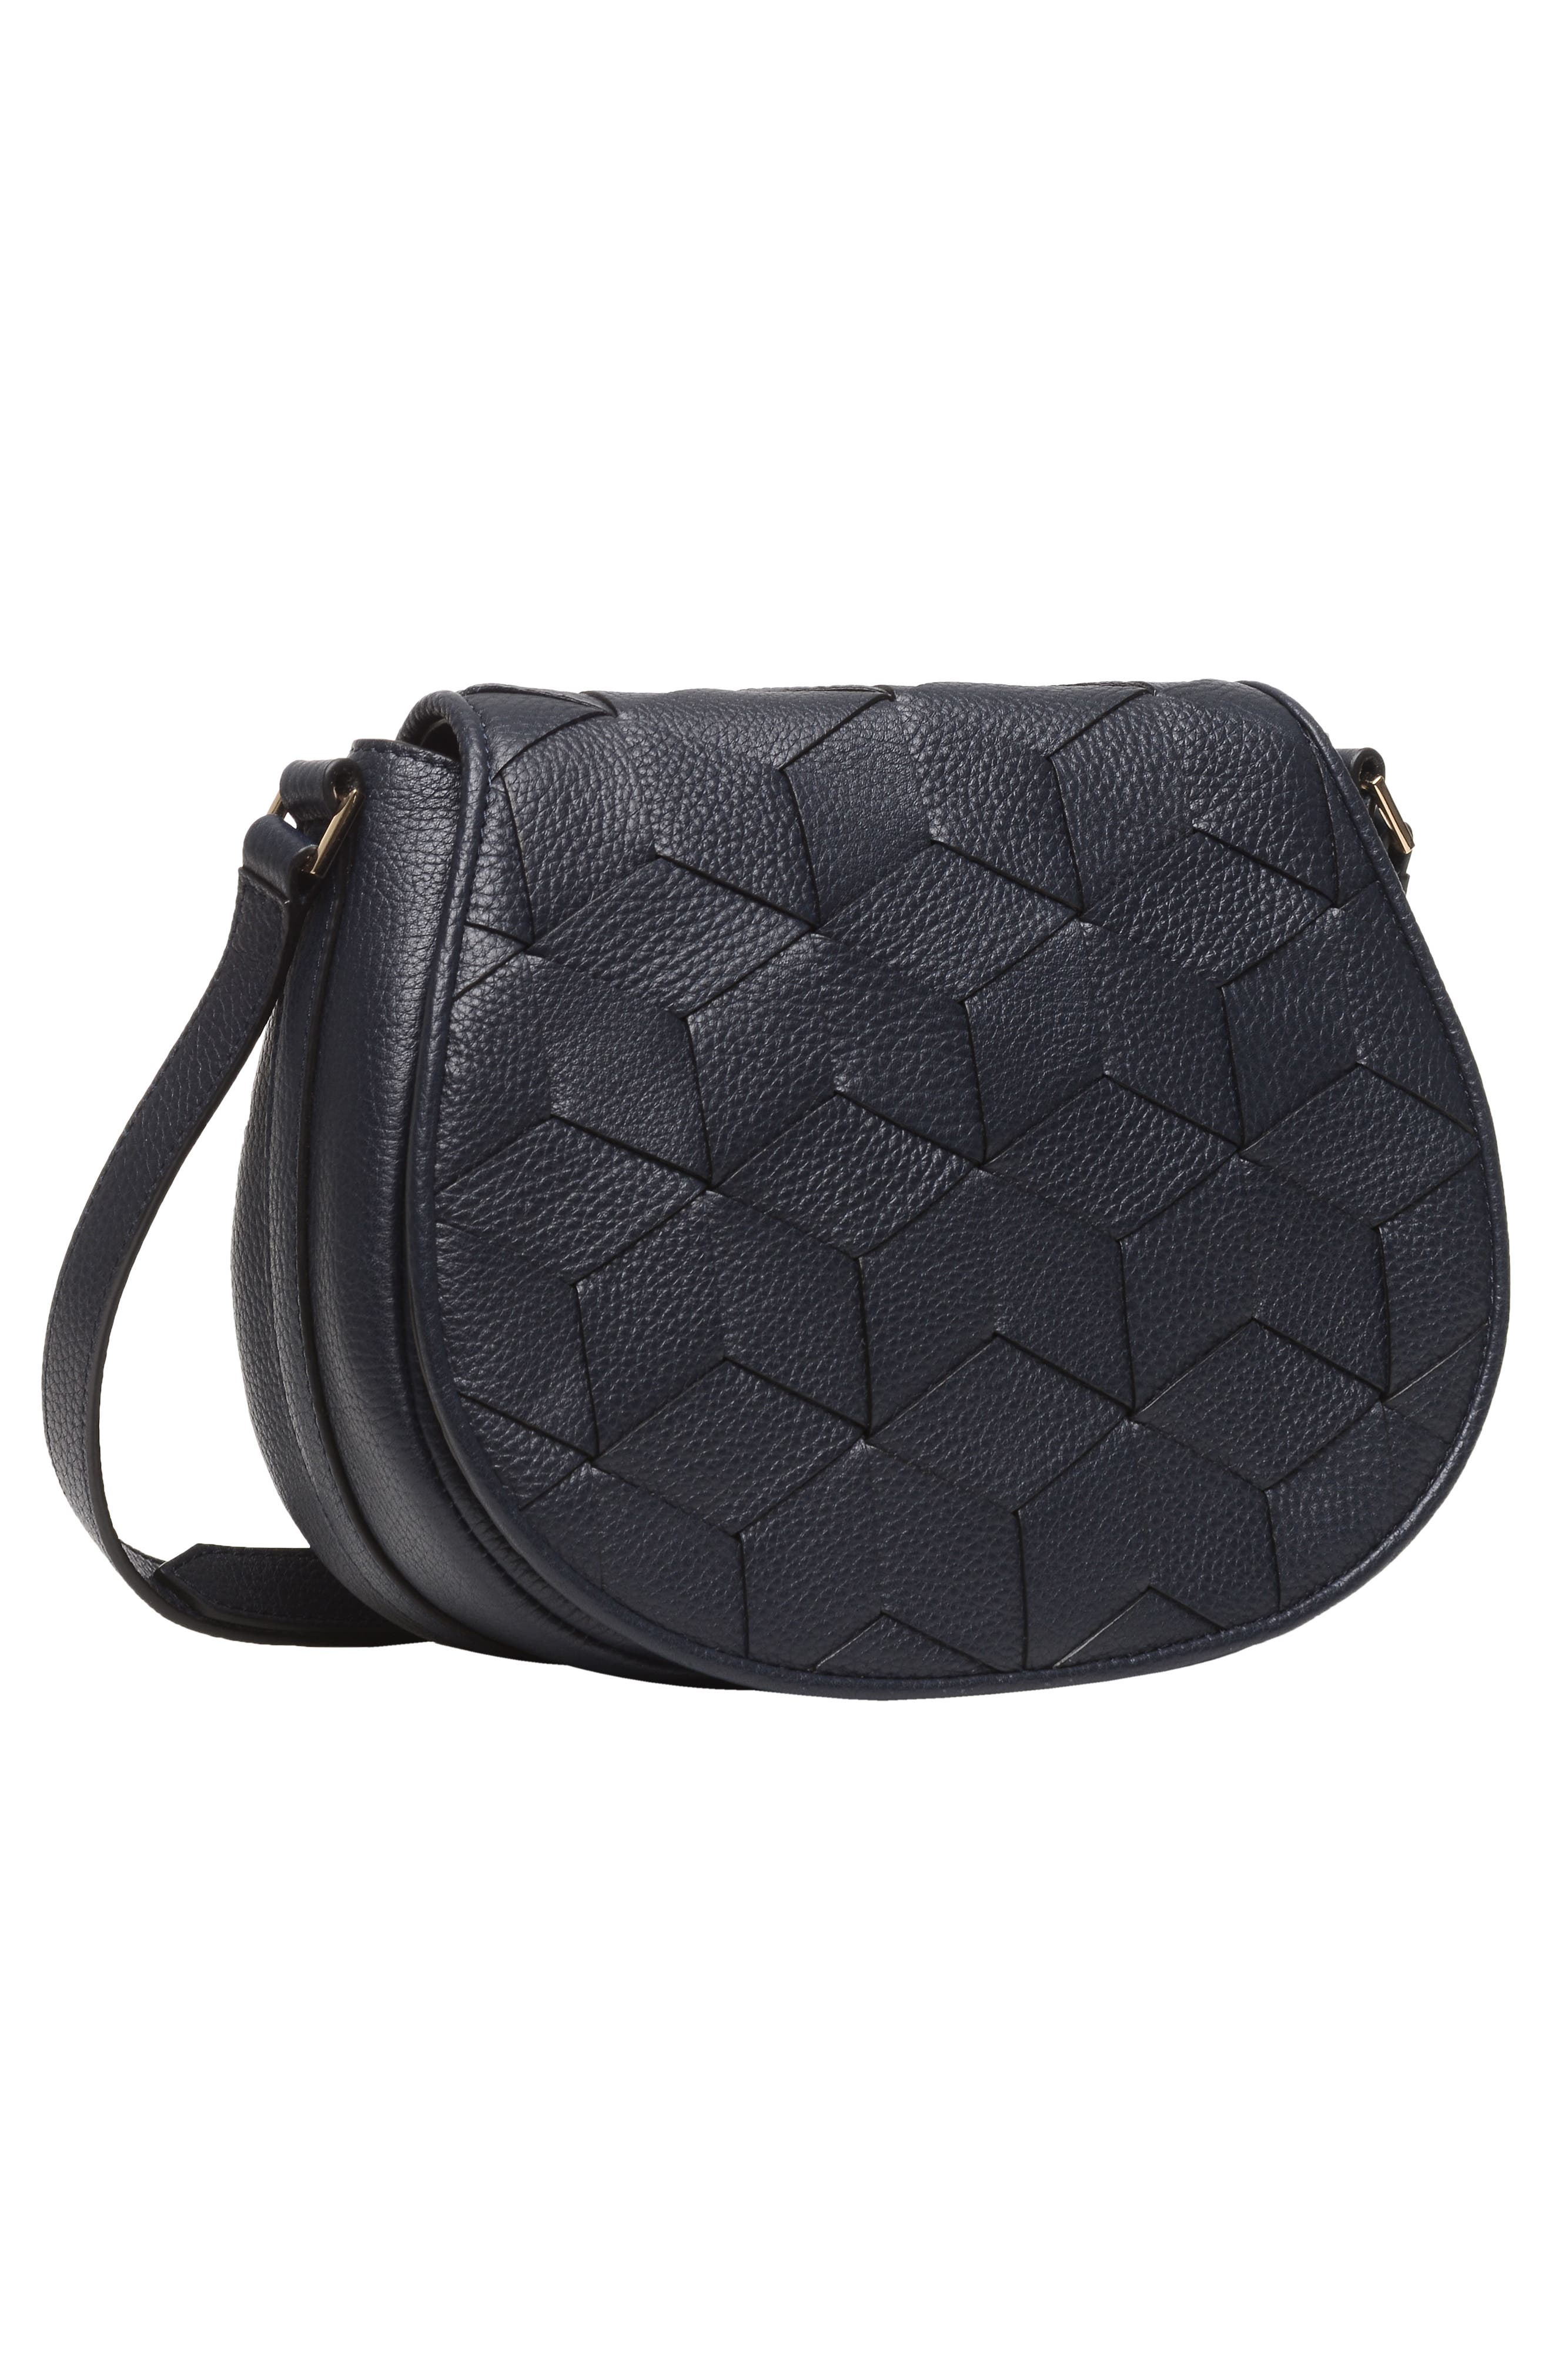 Escapade Pebbled Leather Saddle Bag,                             Alternate thumbnail 3, color,                             Navy